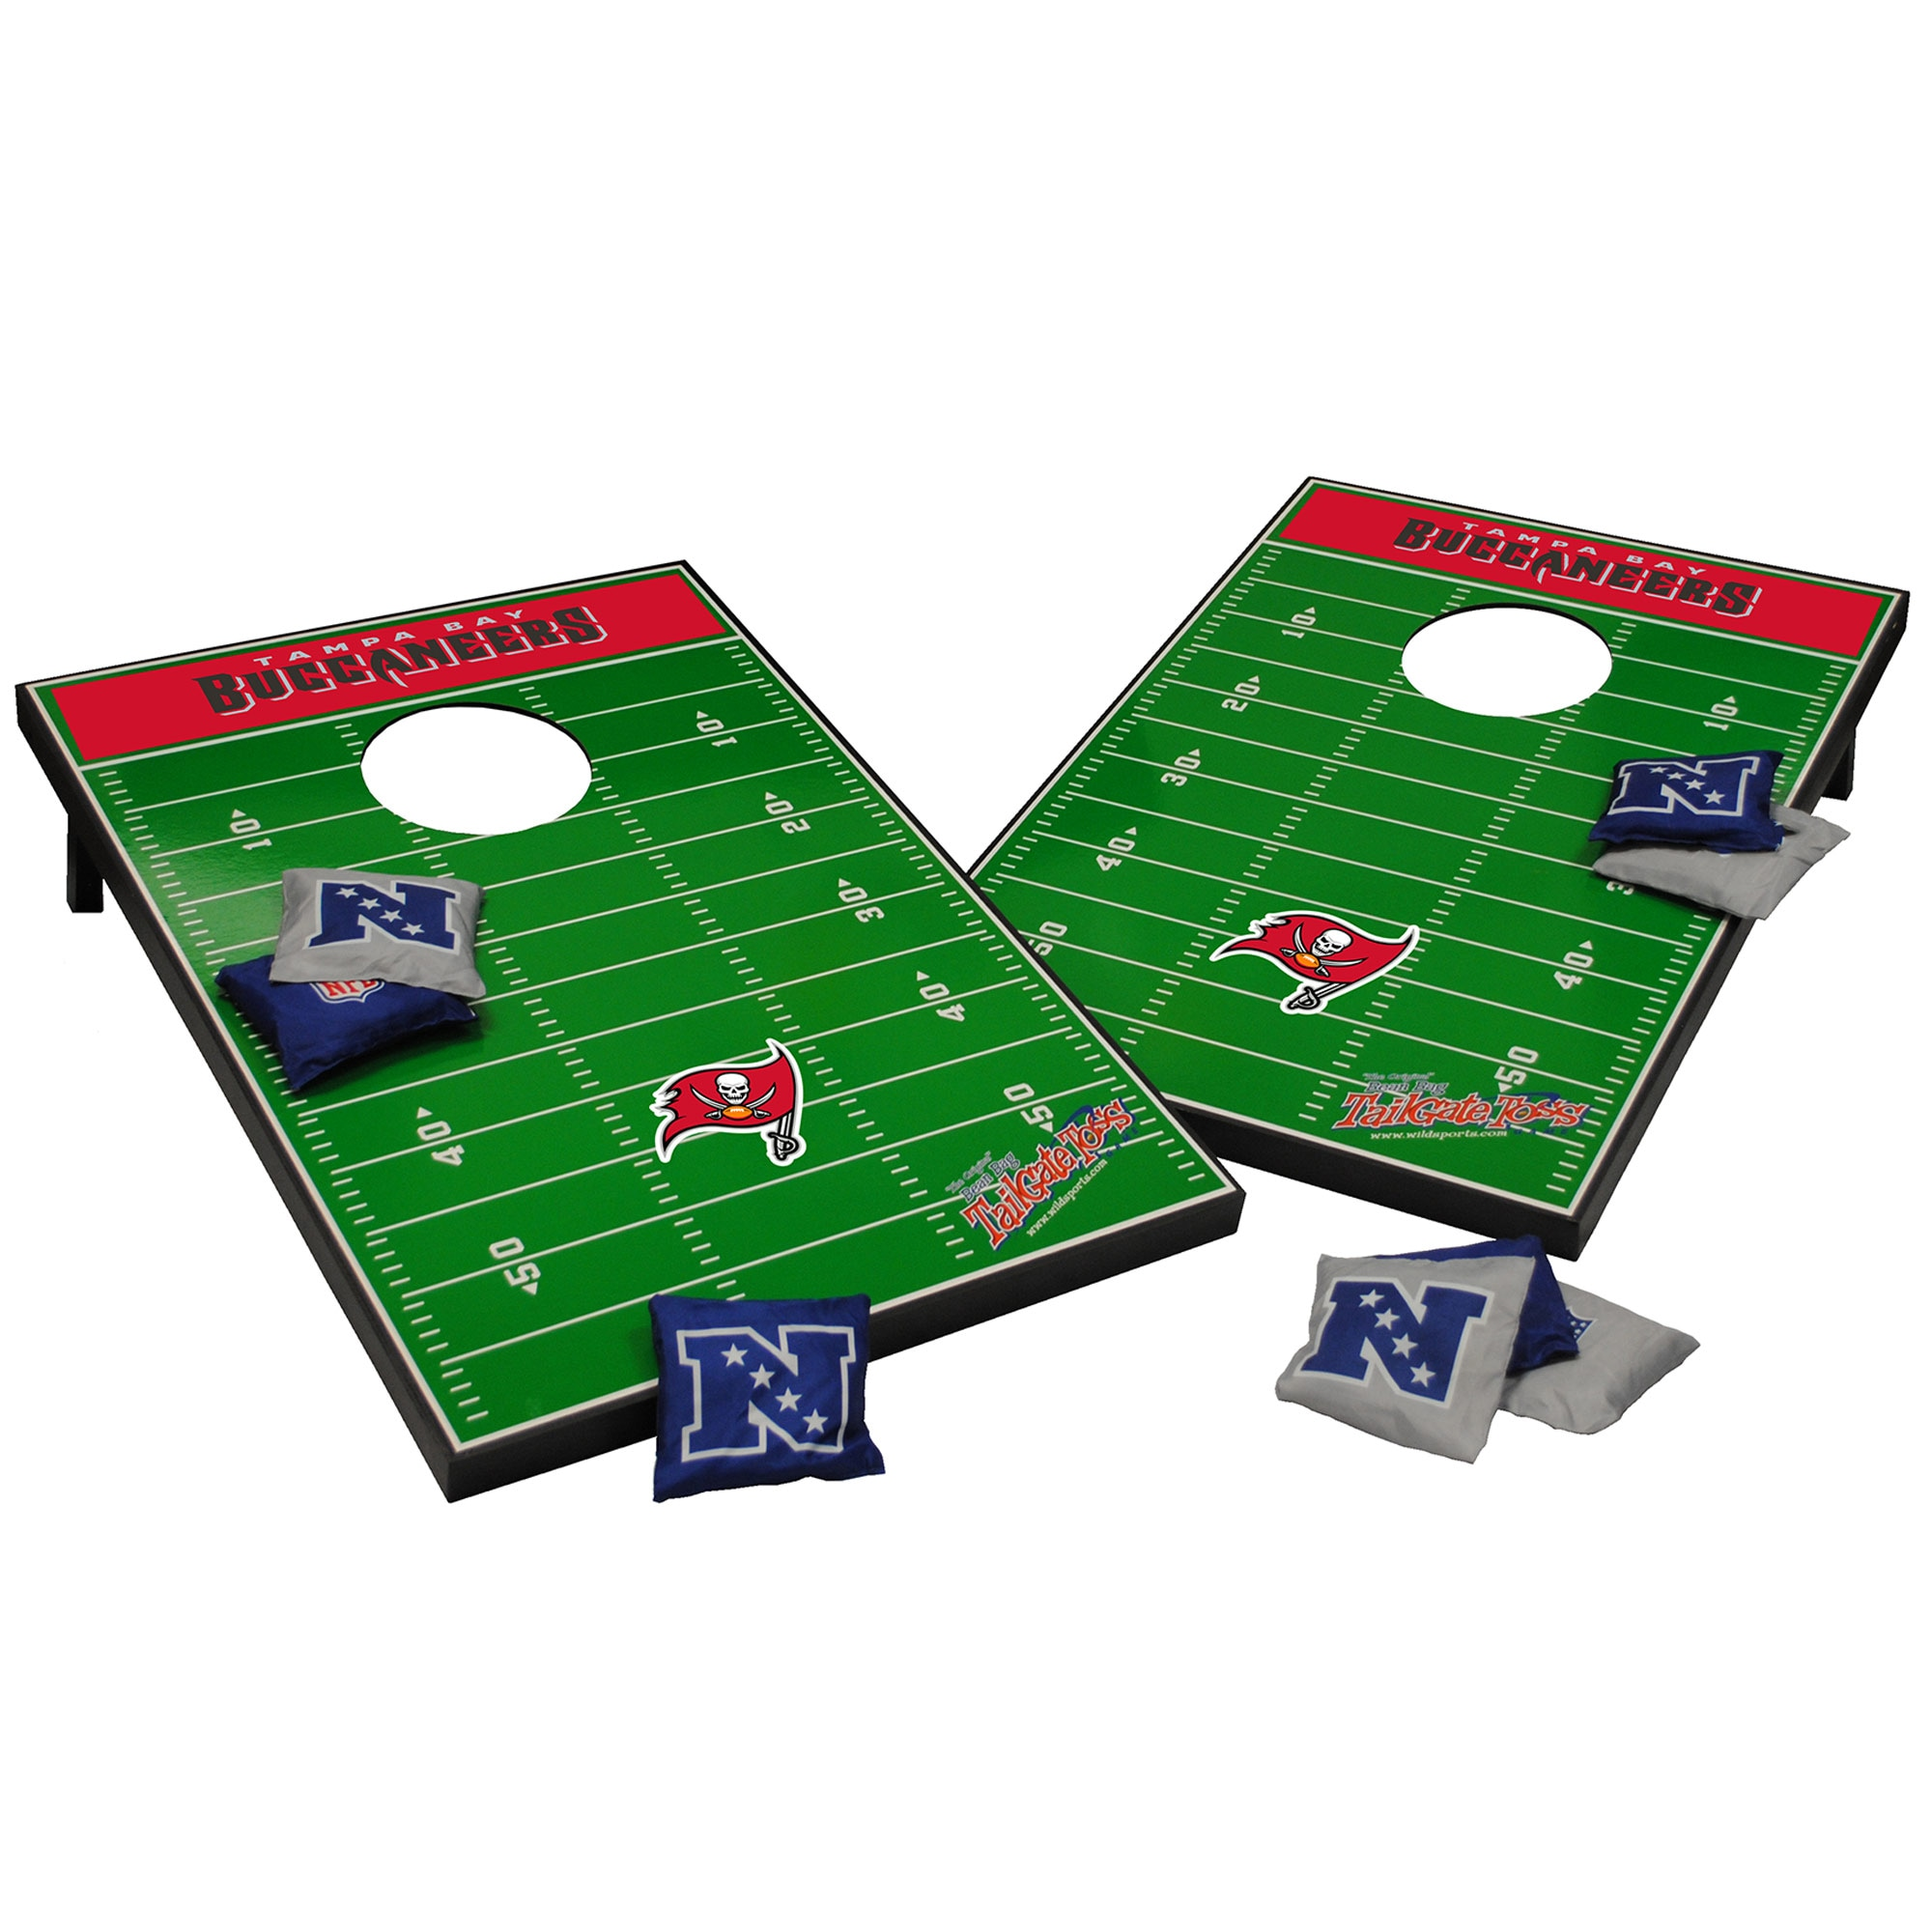 Tampa Bay Buccaneers 2' x 3' Cornhole Board Tailgate Toss Set